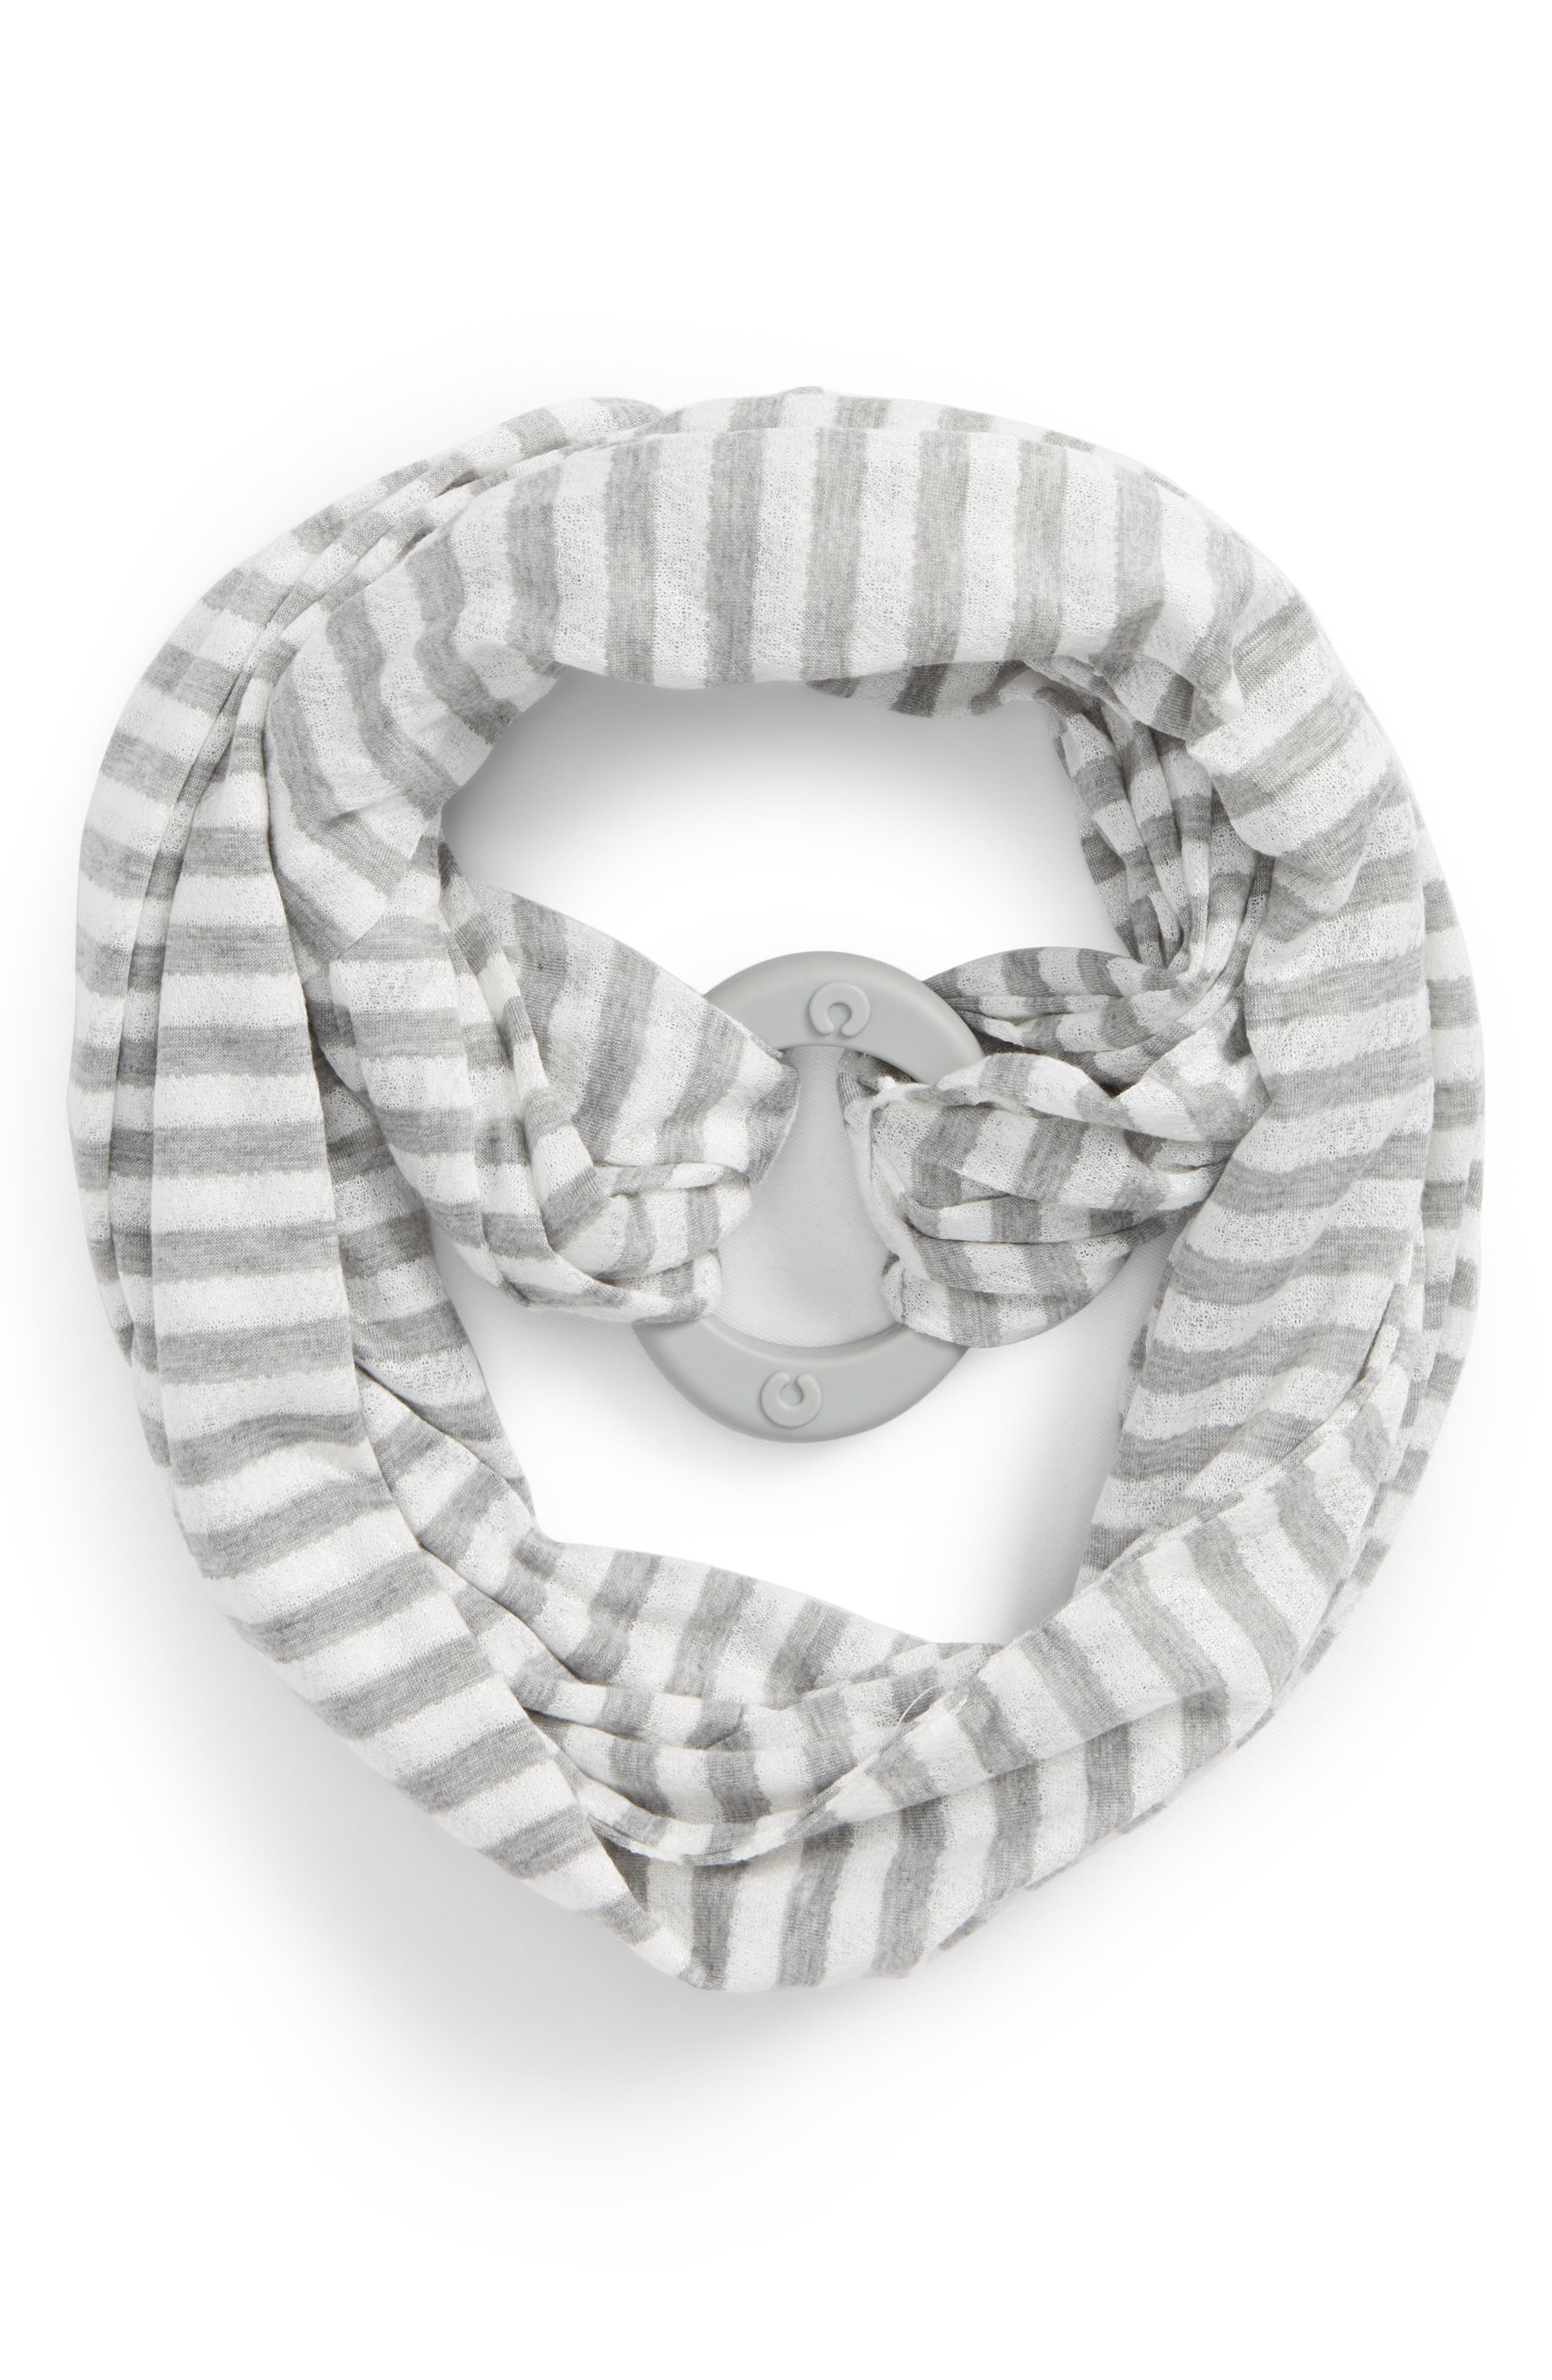 Teething Infinity Scarf,                         Main,                         color, Gray And White Stripes